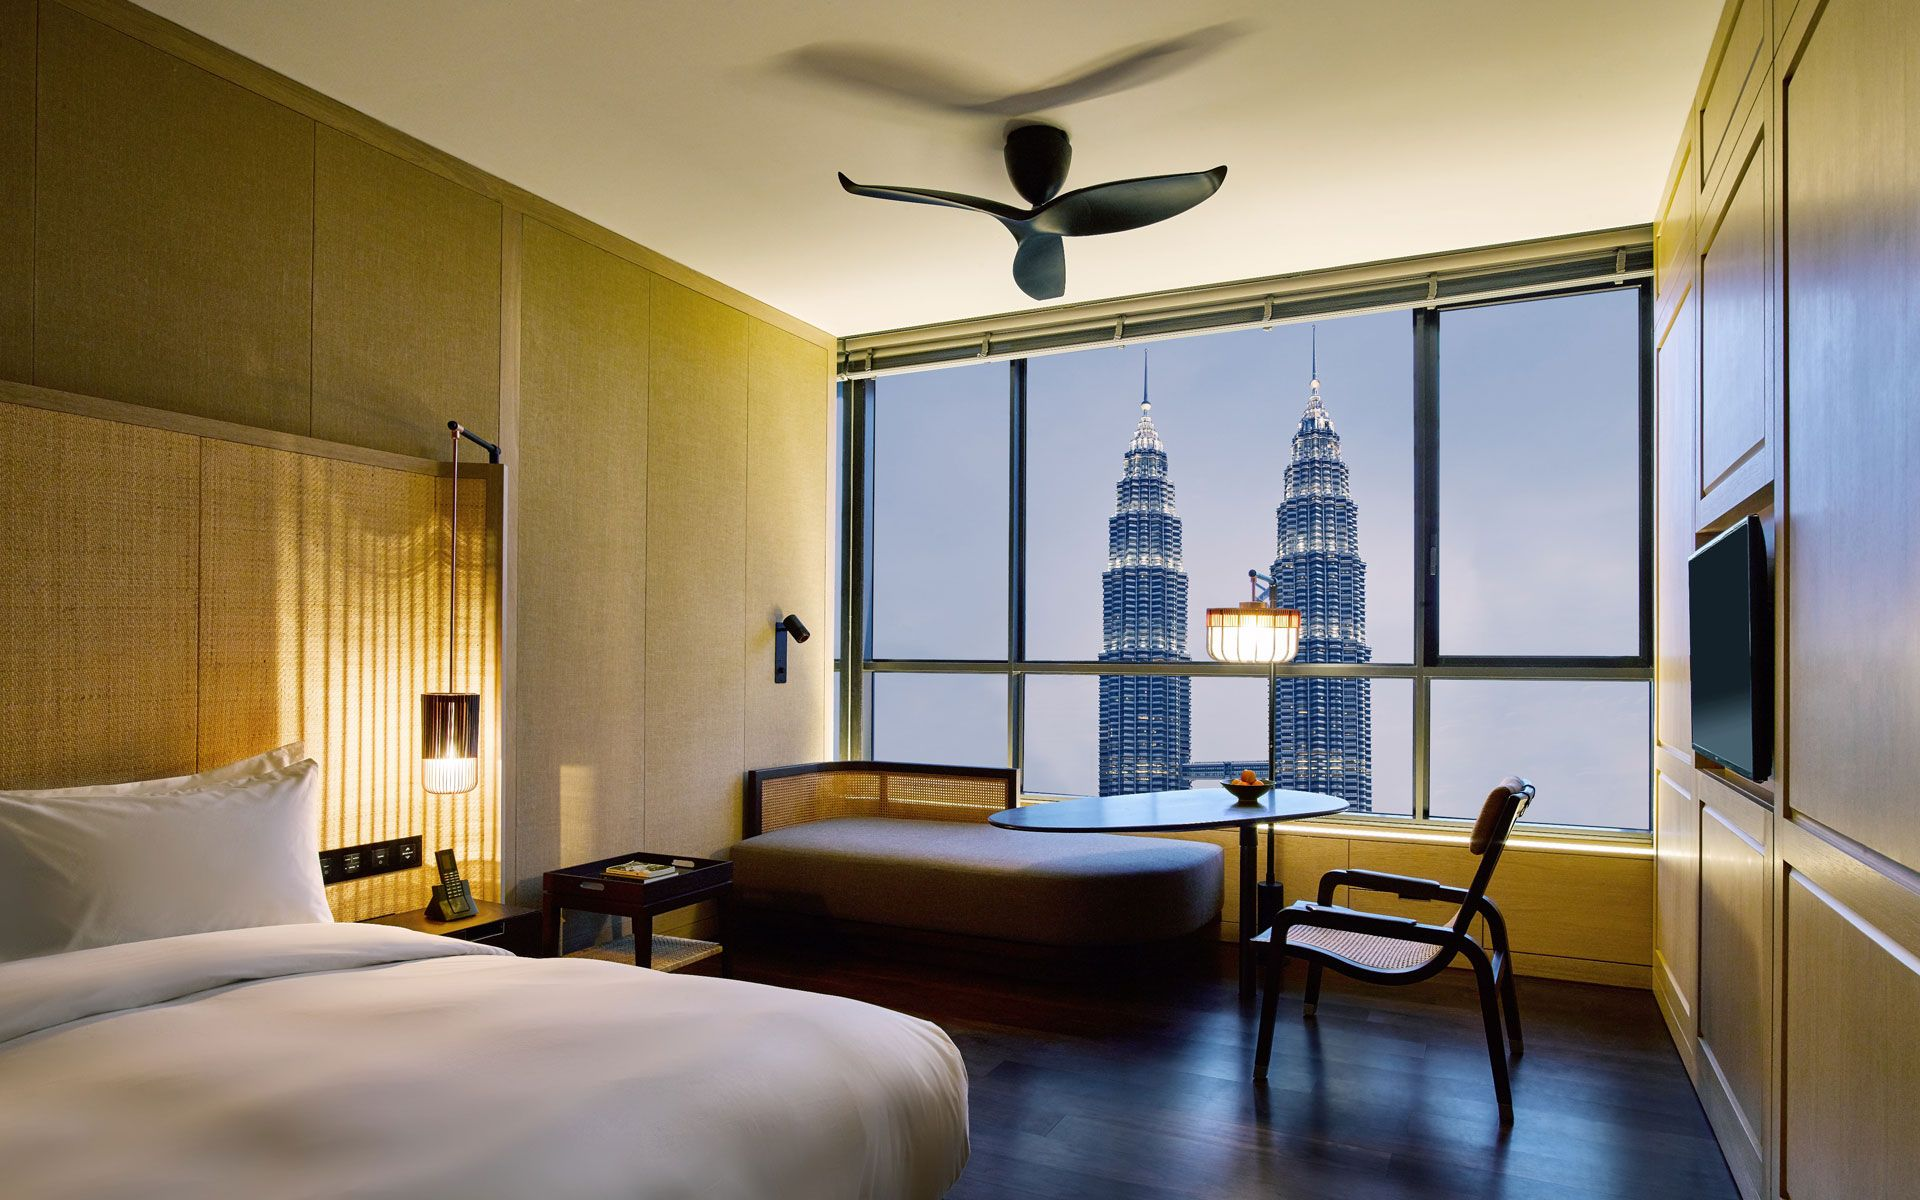 New In Malaysia: 9 Hotels For A 'Suite' Staycation In 2019